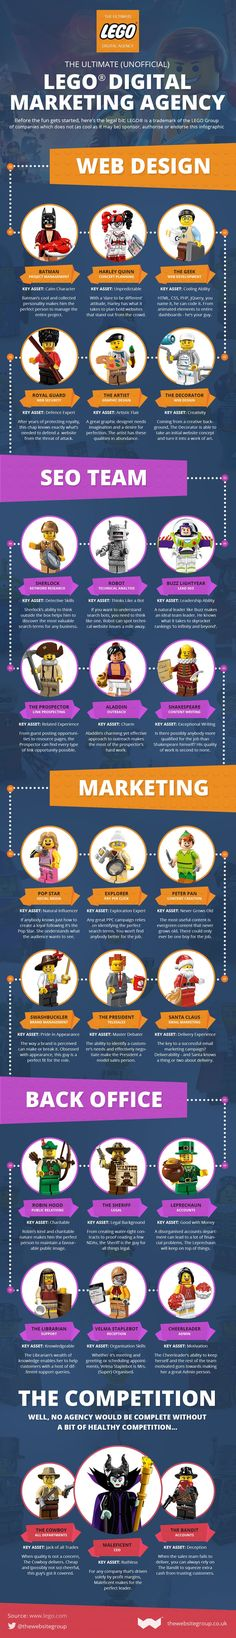 The Ultimate Lego Digital Marketing Agency - Infographic